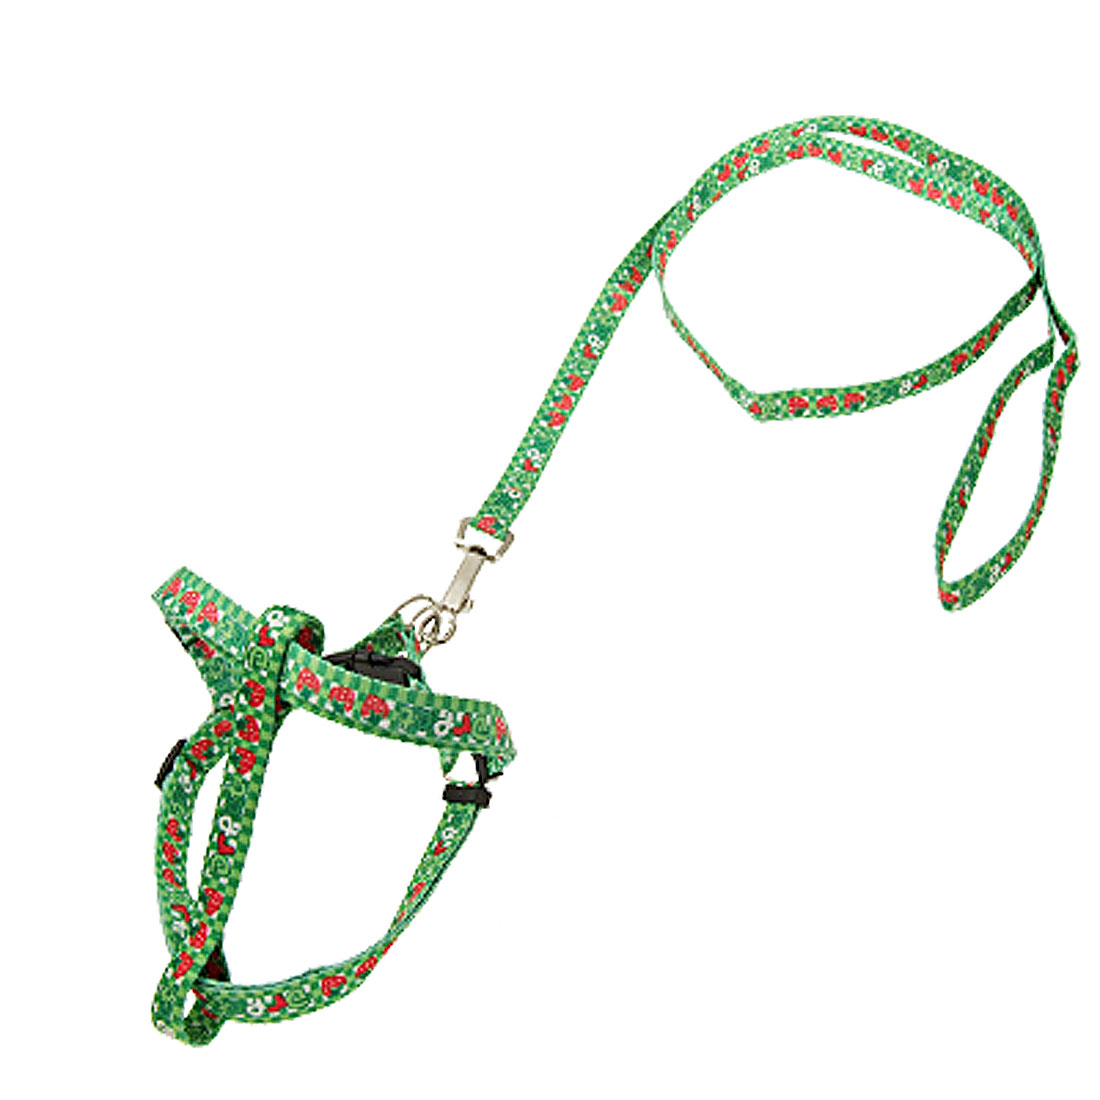 Dog's 's Puppy Nylon Pulling Harness Leash Rope